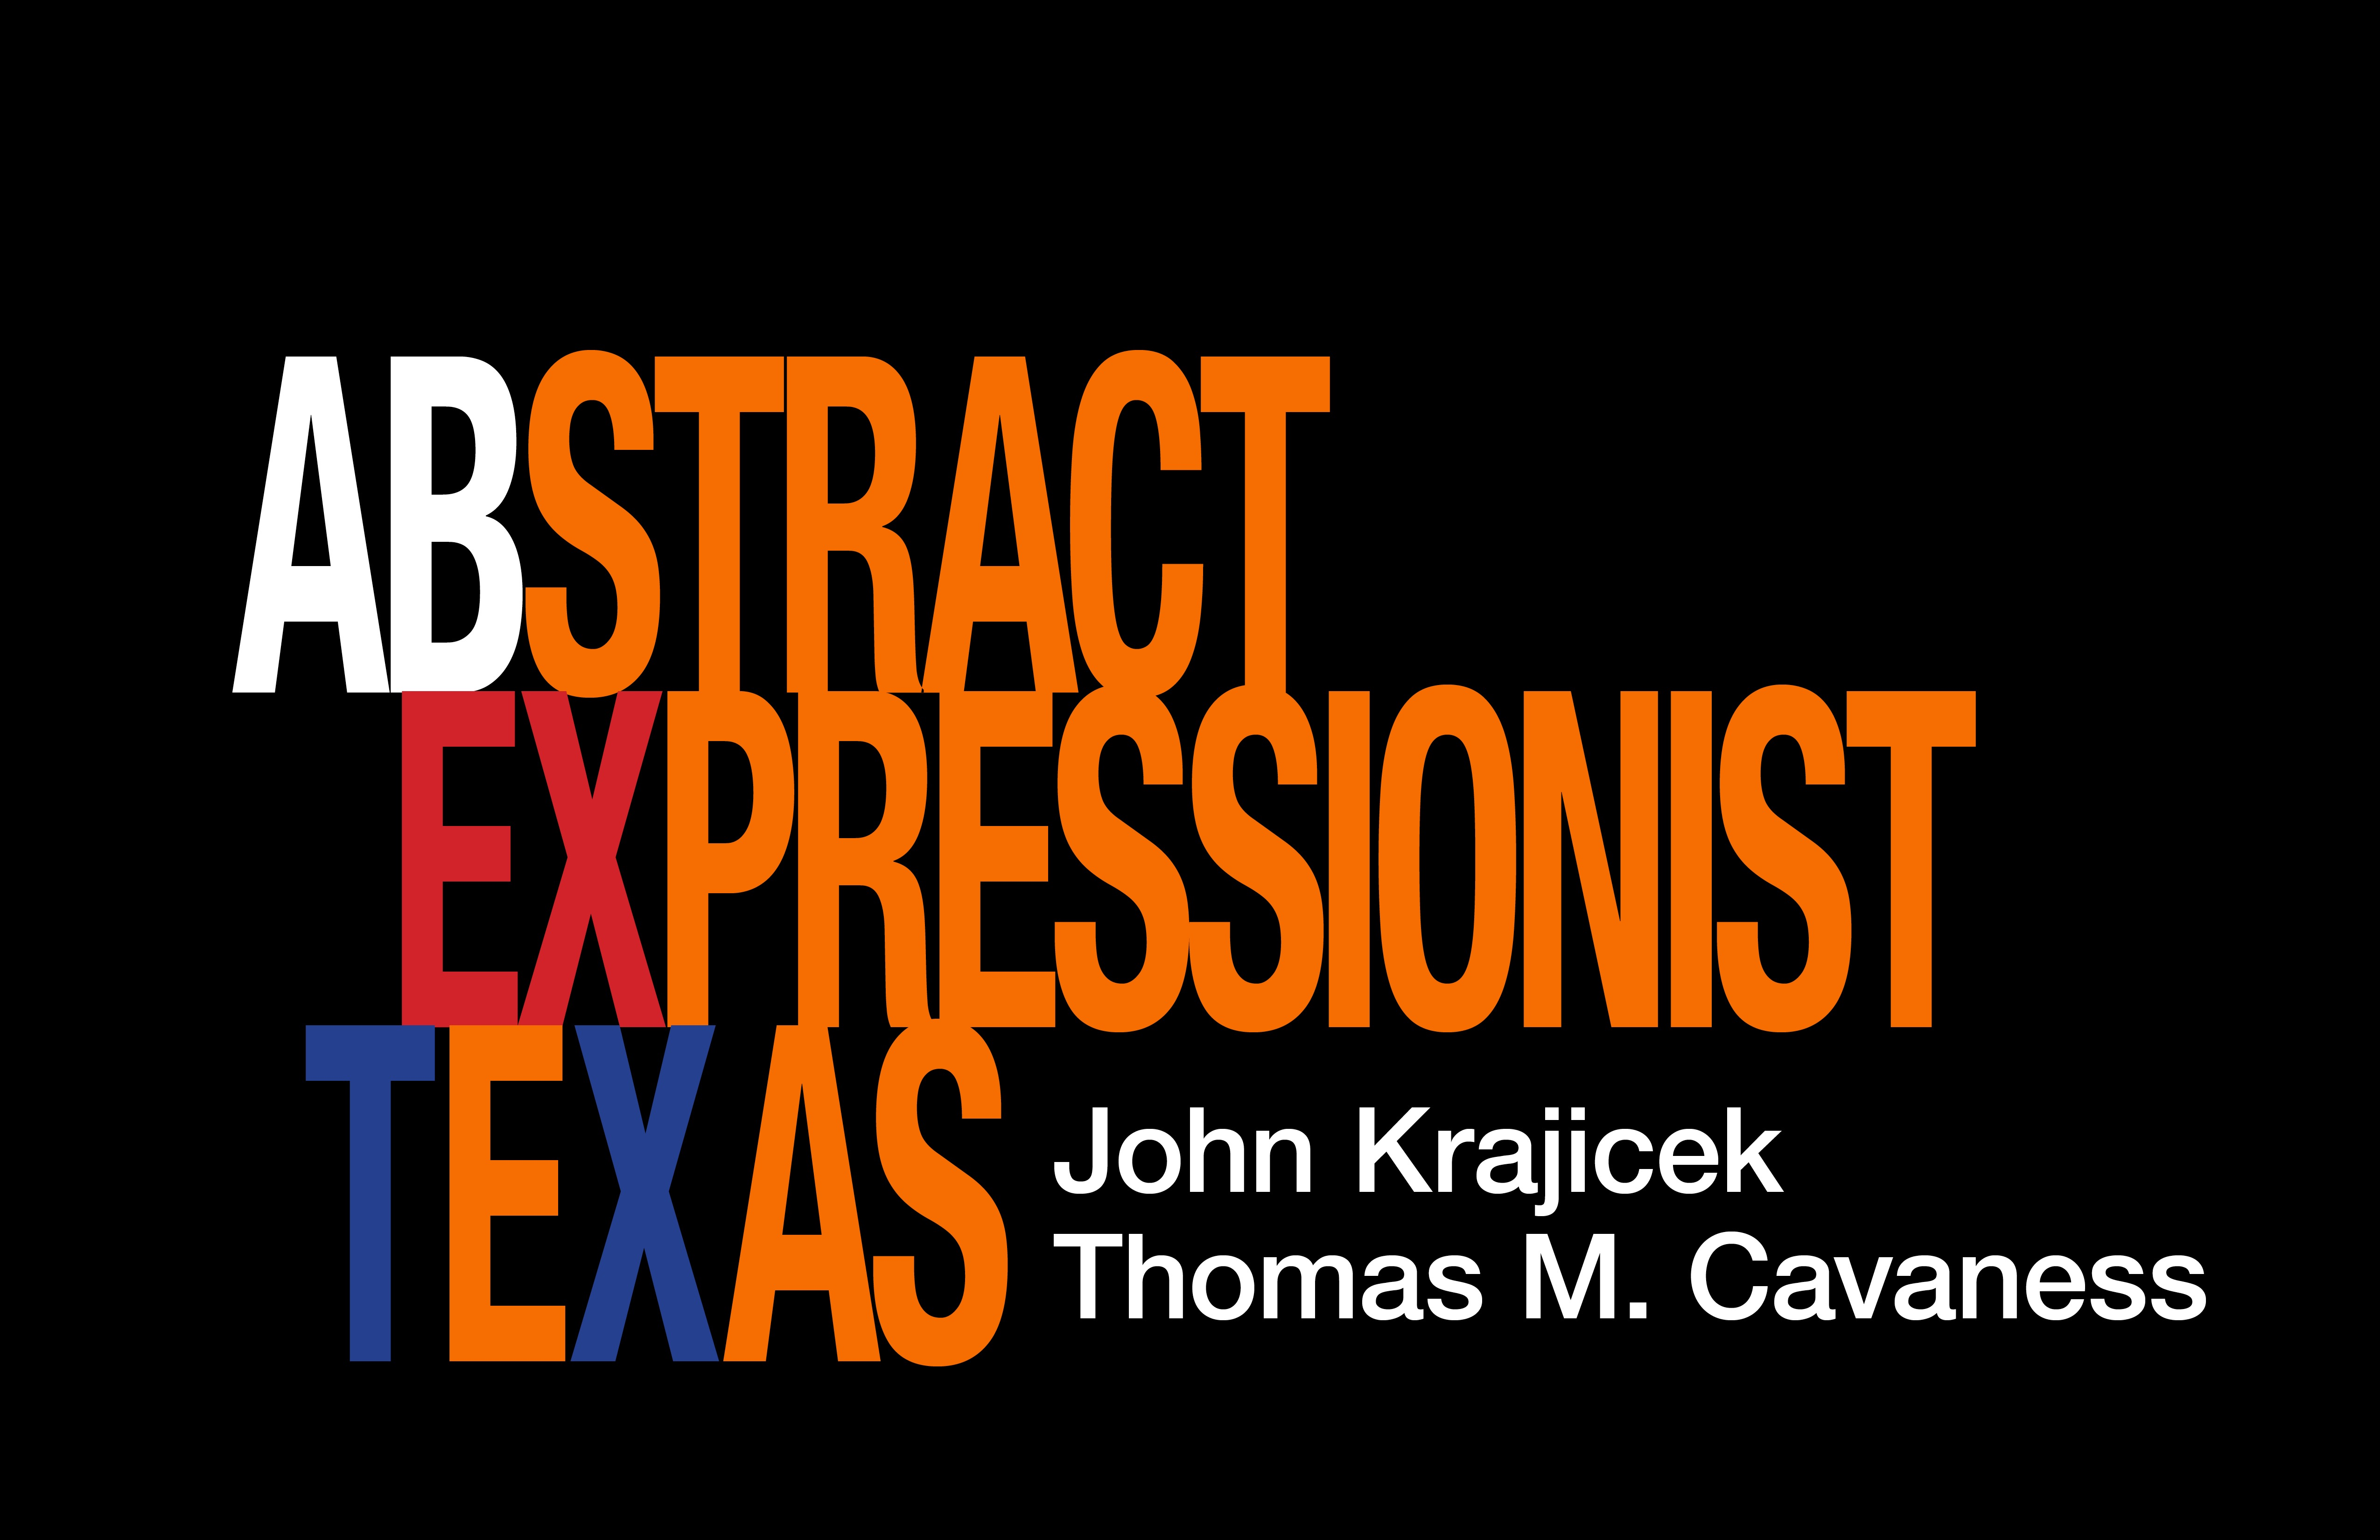 SEAD Gallery welcomes Abstract Expressionist exhibit!